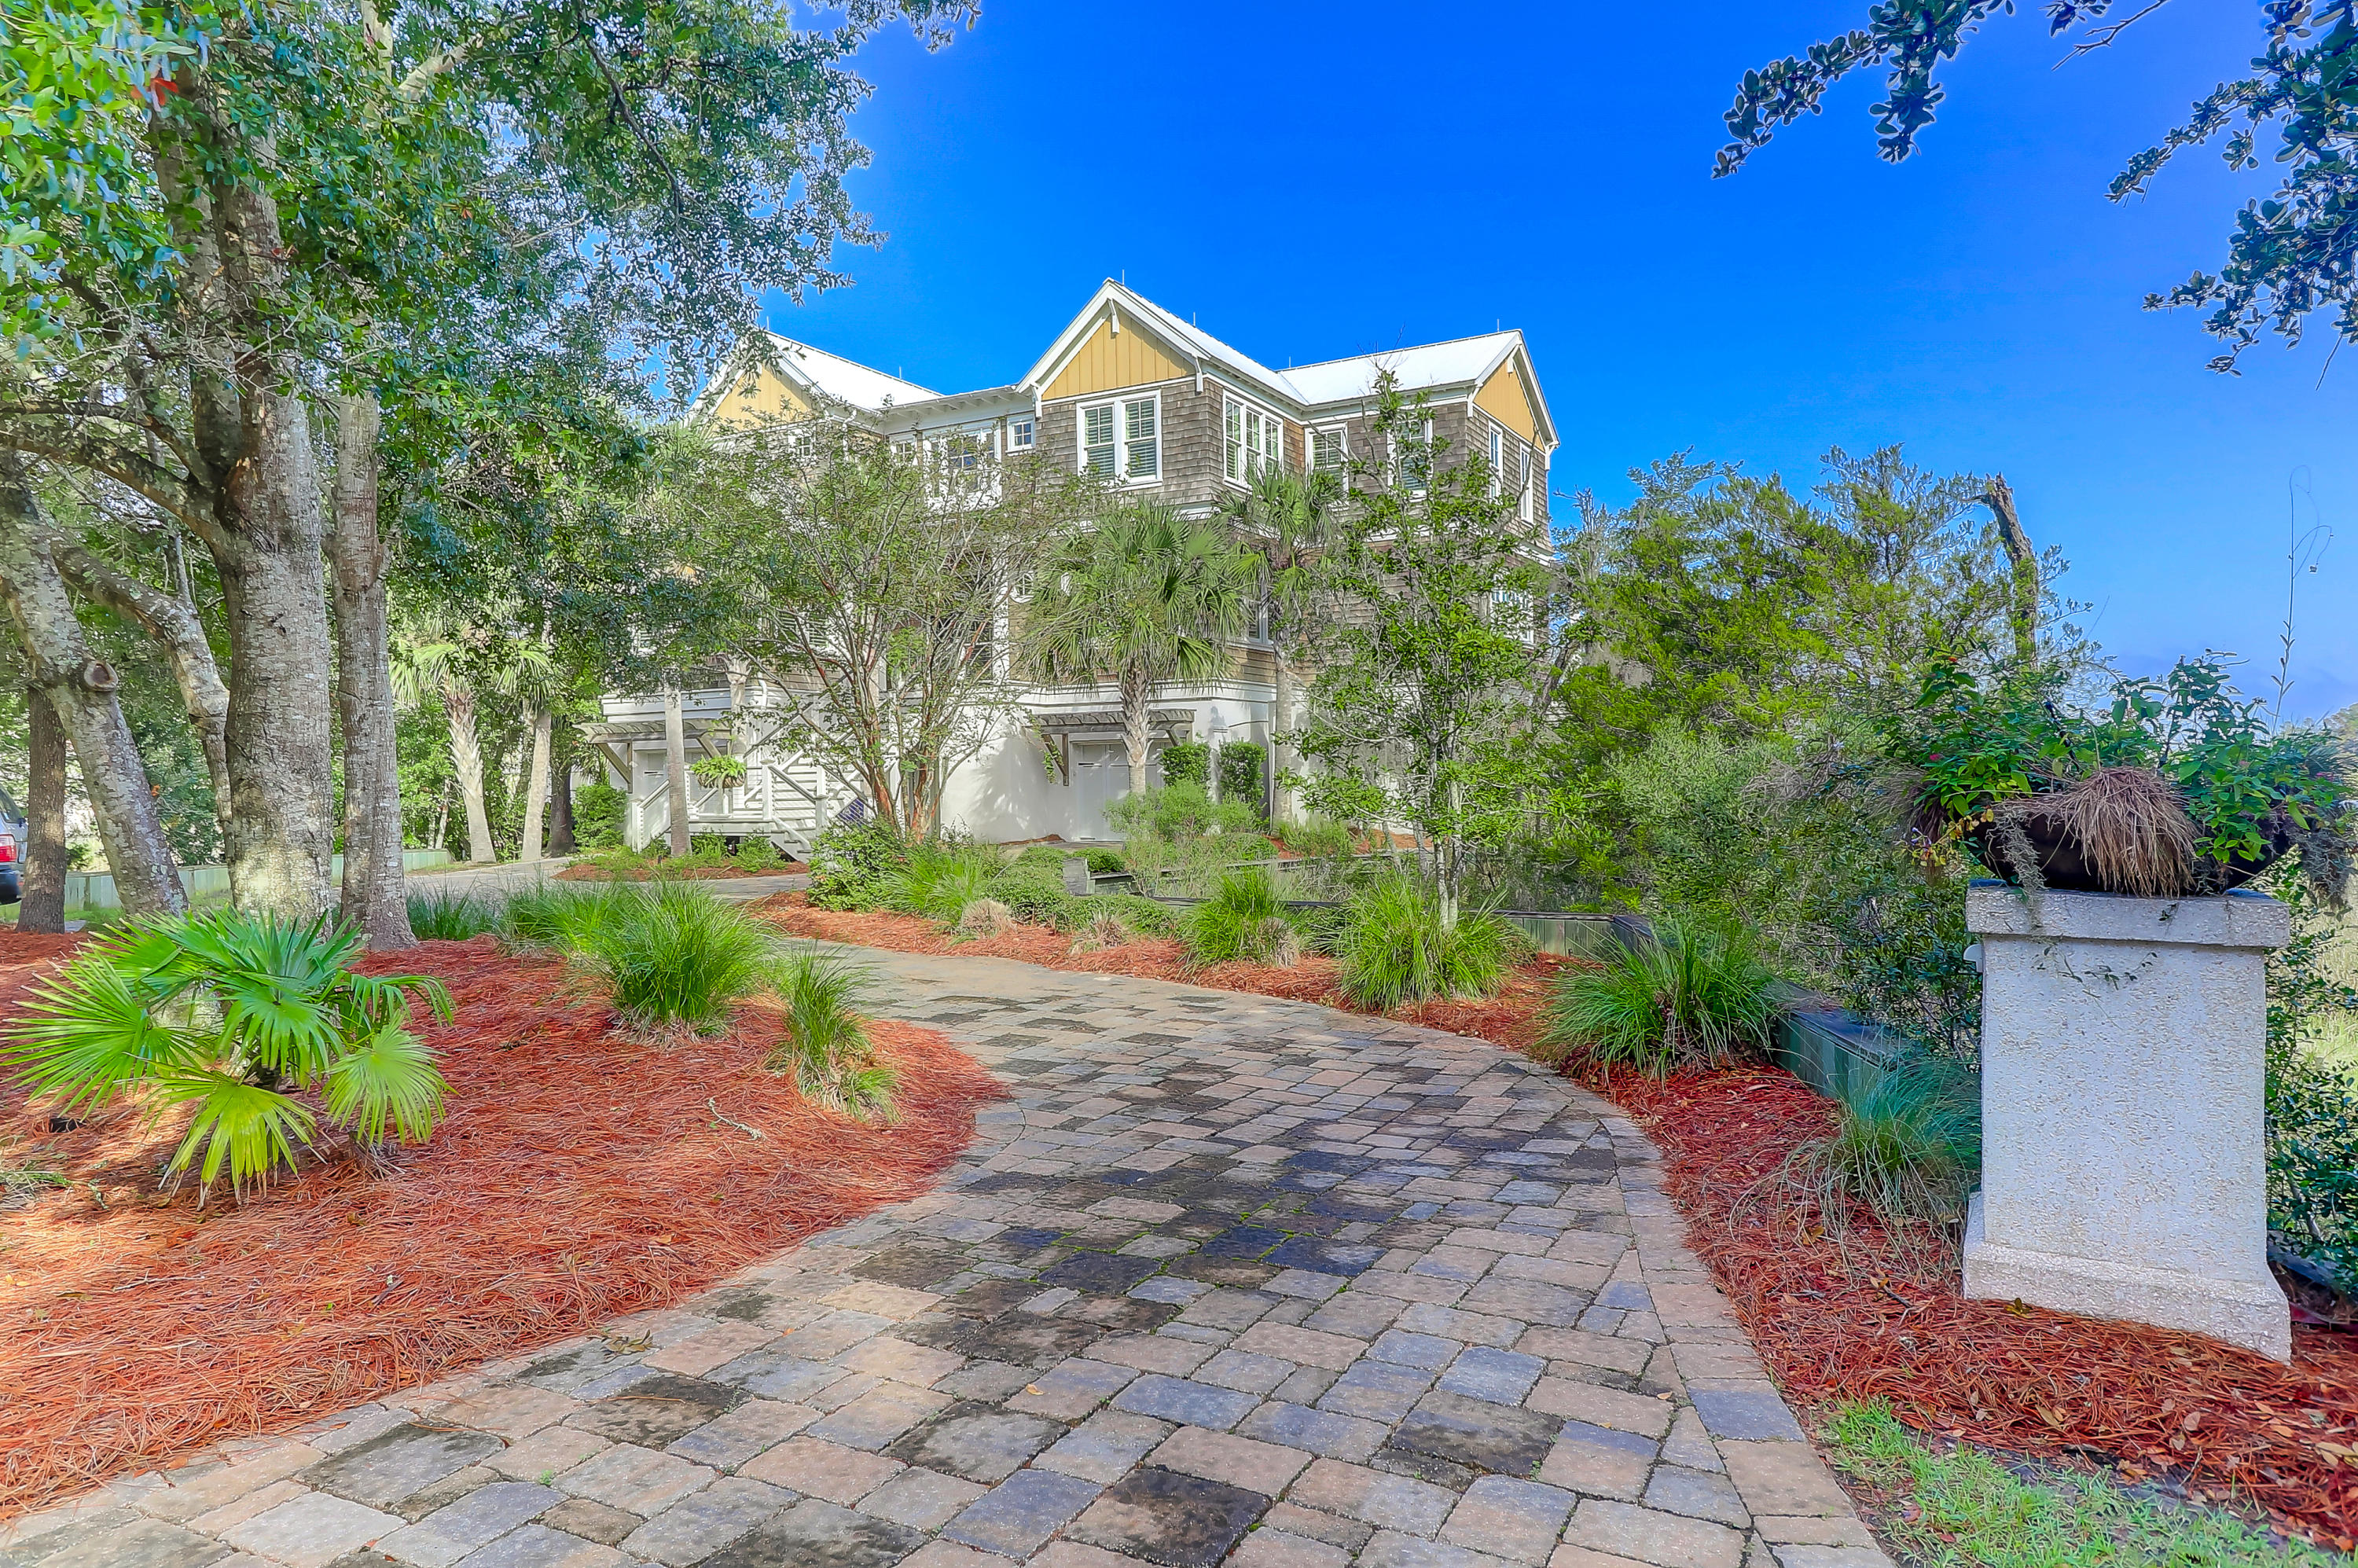 Wild Dunes Homes For Sale - 40 Seagrass, Isle of Palms, SC - 0